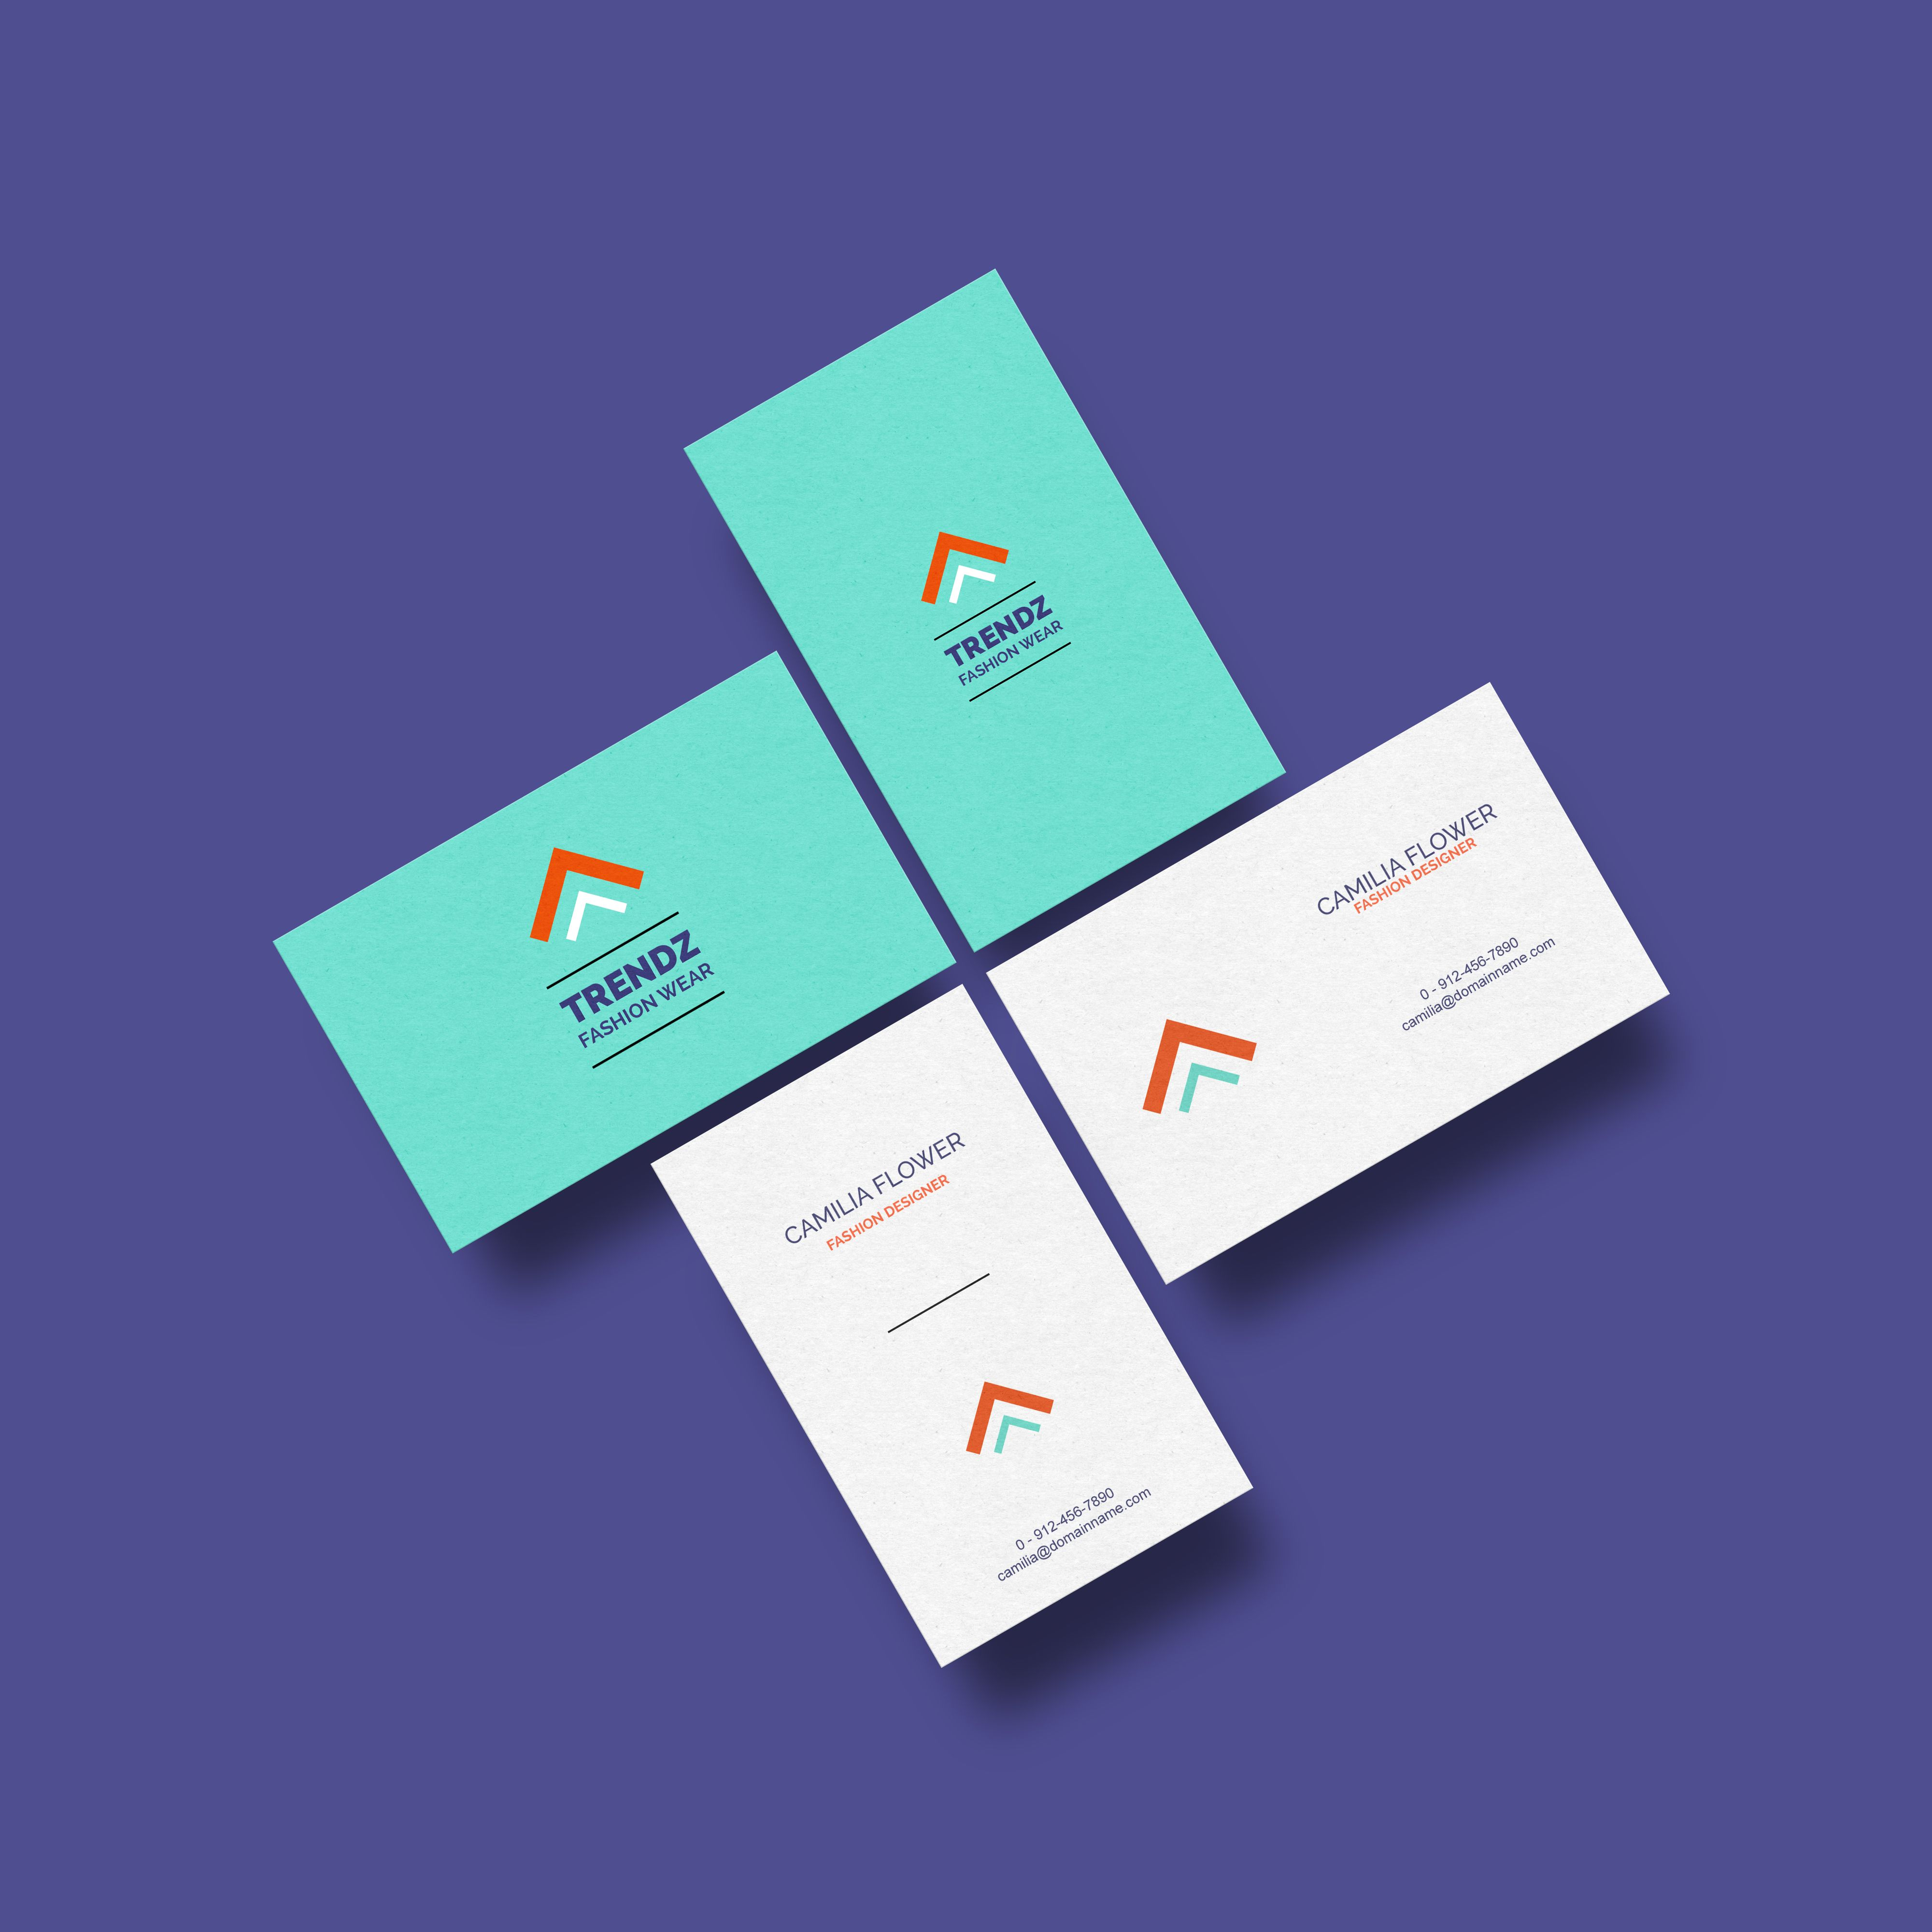 Pin by exclusive design on Business Card   Pinterest   Business cards